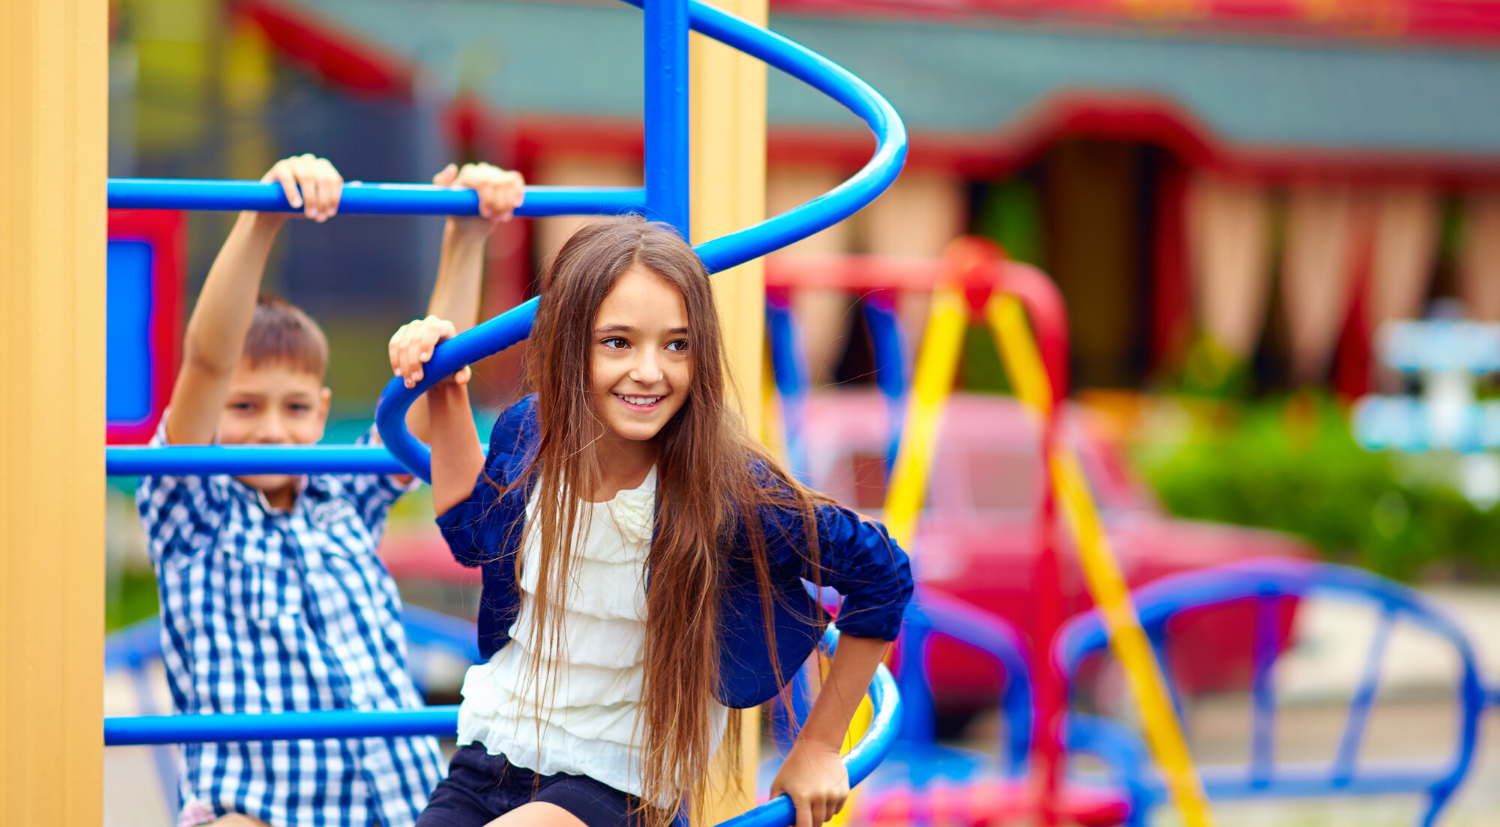 photo of two kids playing at a payground